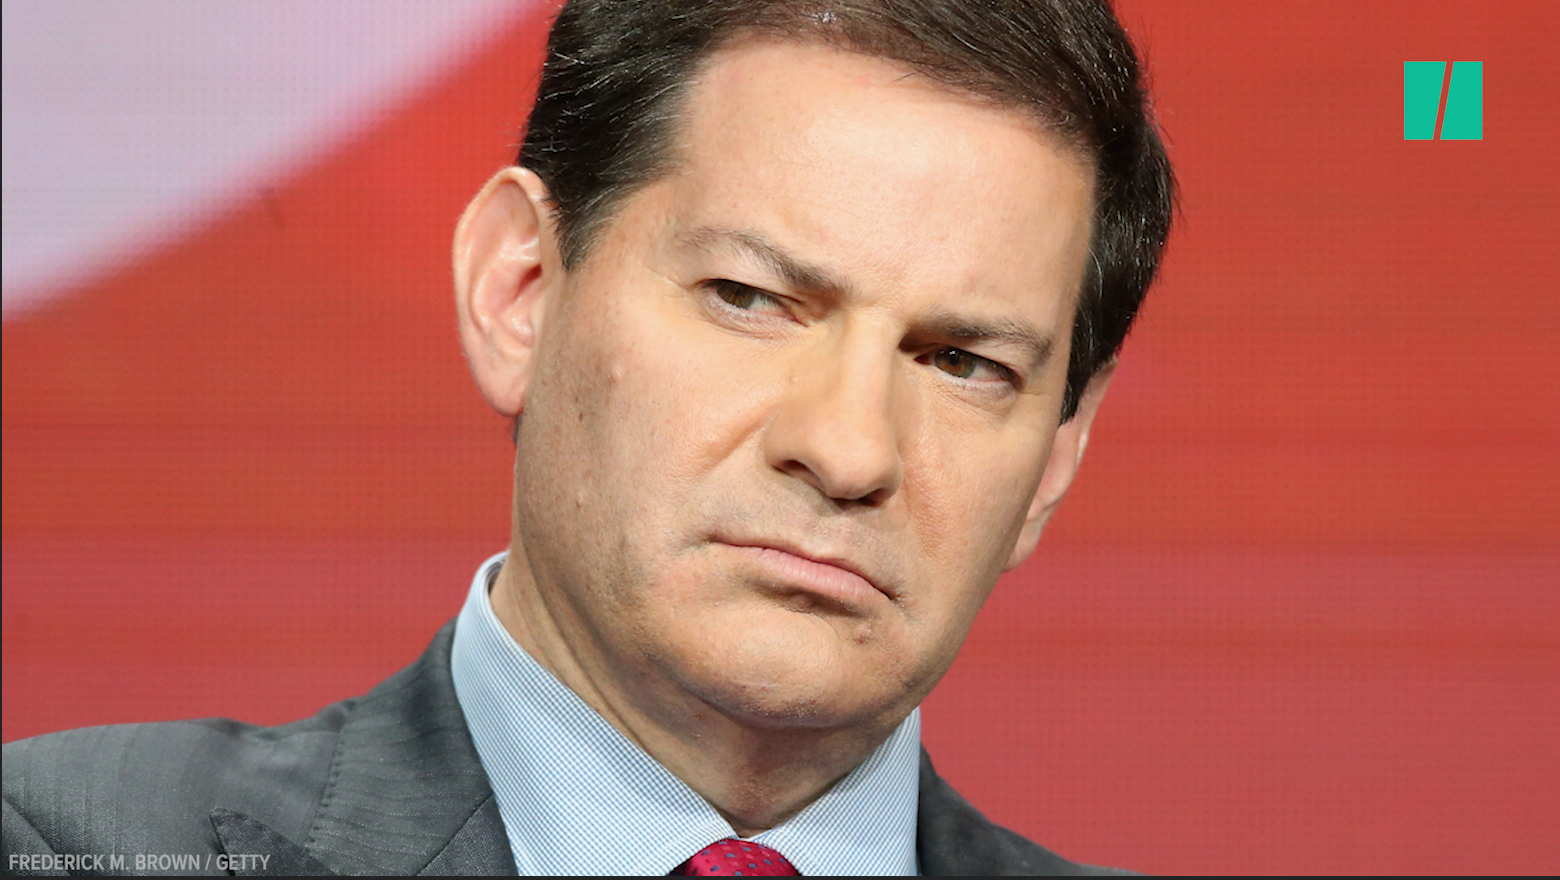 Mark Halperin Signs Book Deal After 2017 Sexual Harassment Allegations